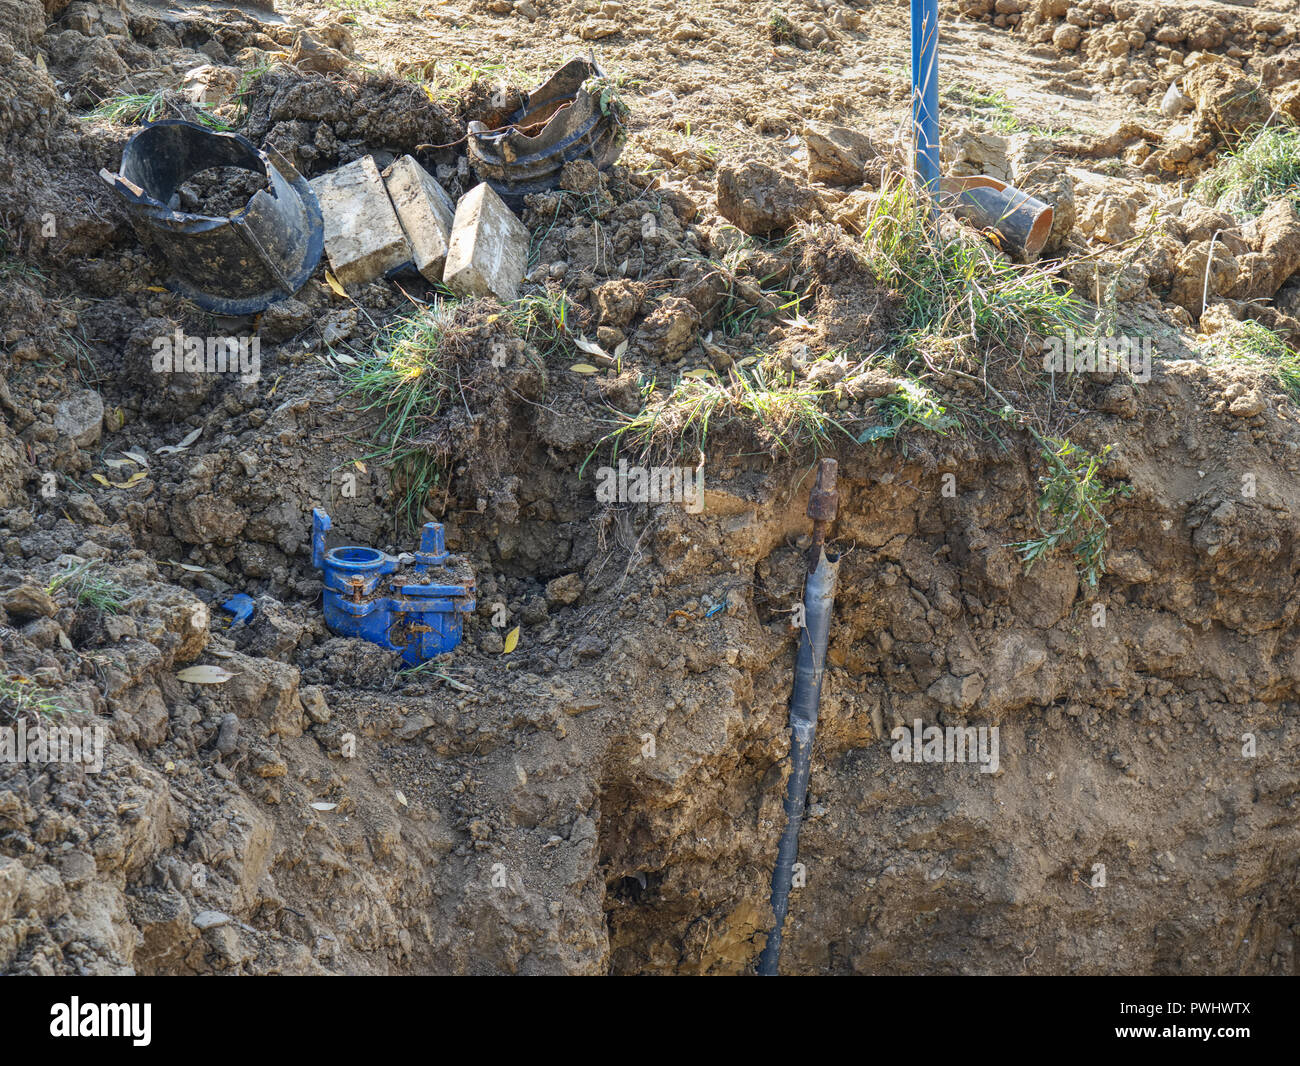 Plastic tubes in trench of sand joined together with press reduction member. Portable water supply chain in city. - Stock Image